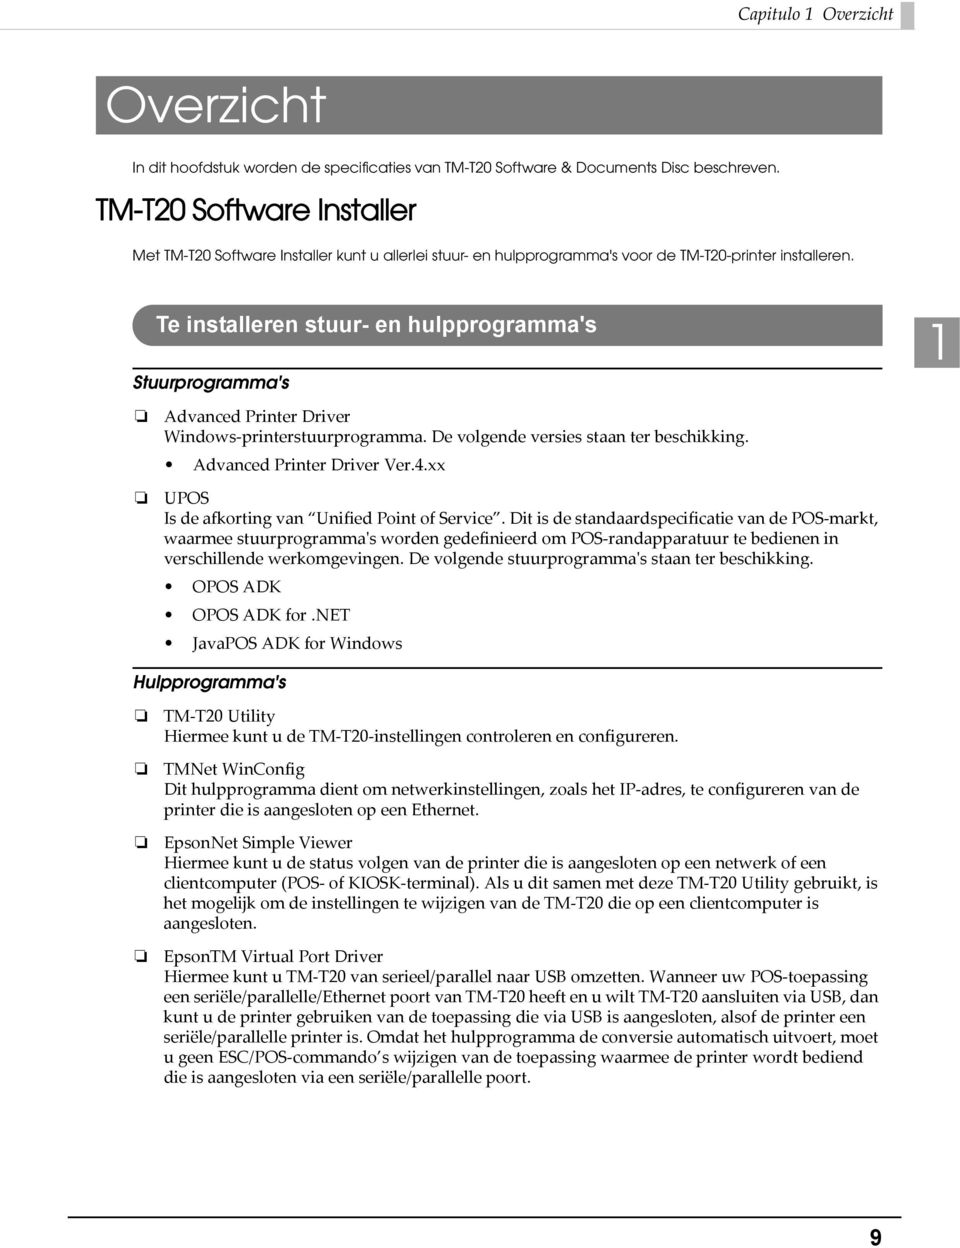 Te installeren stuur- en hulpprogramma's Stuurprogramma's 1 Advanced Printer Driver Windows printerstuurprogramma. De volgende versies staan ter beschikking. Advanced Printer Driver Ver.4.